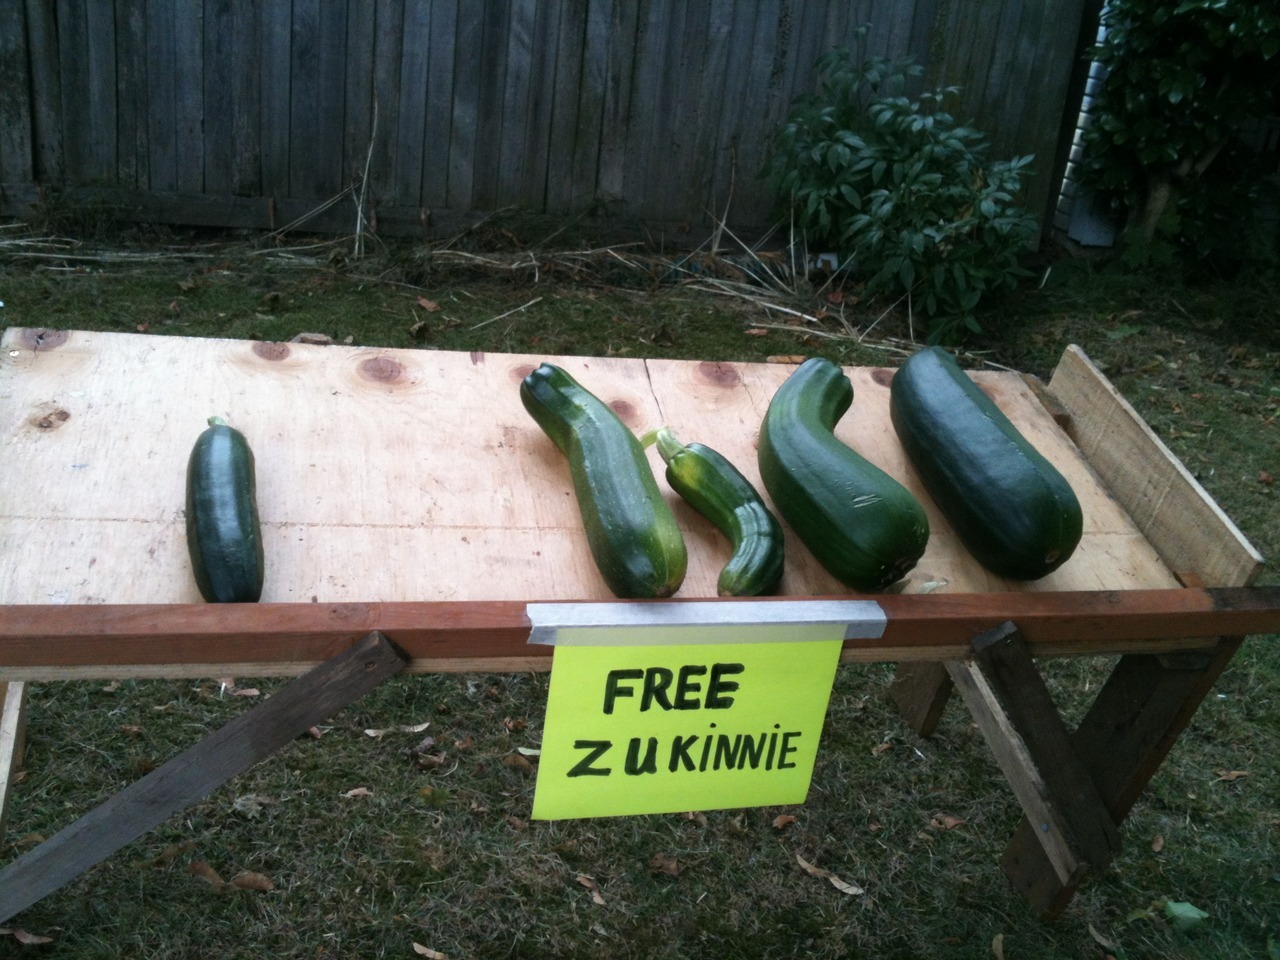 Our funky neighbors giving away their veg.